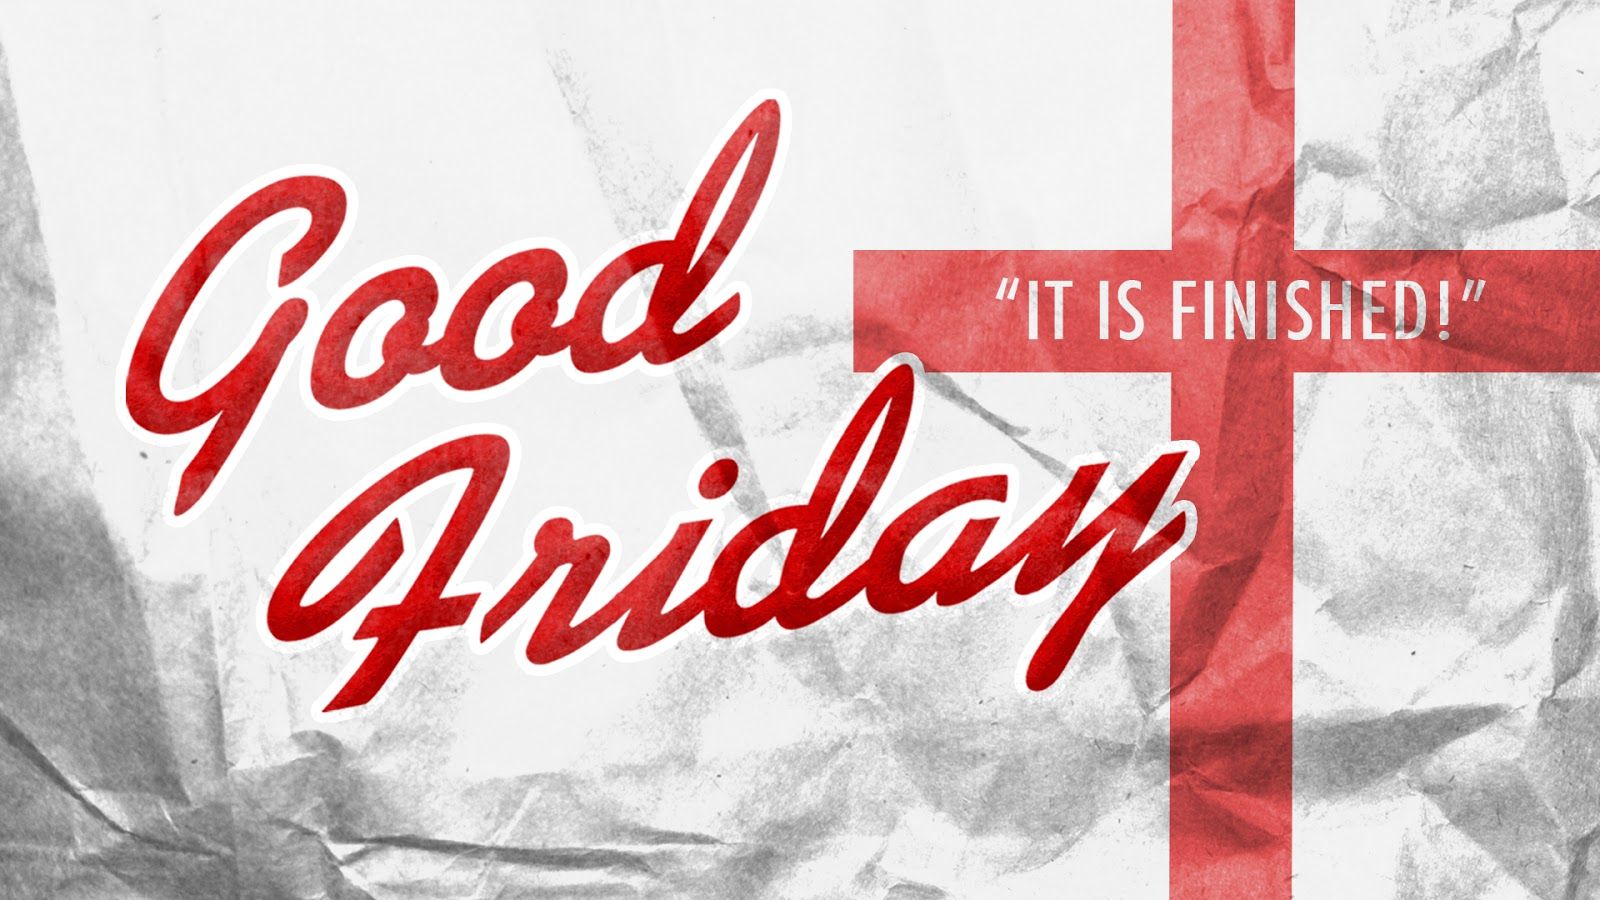 Good Friday Images Download For Facebook In English